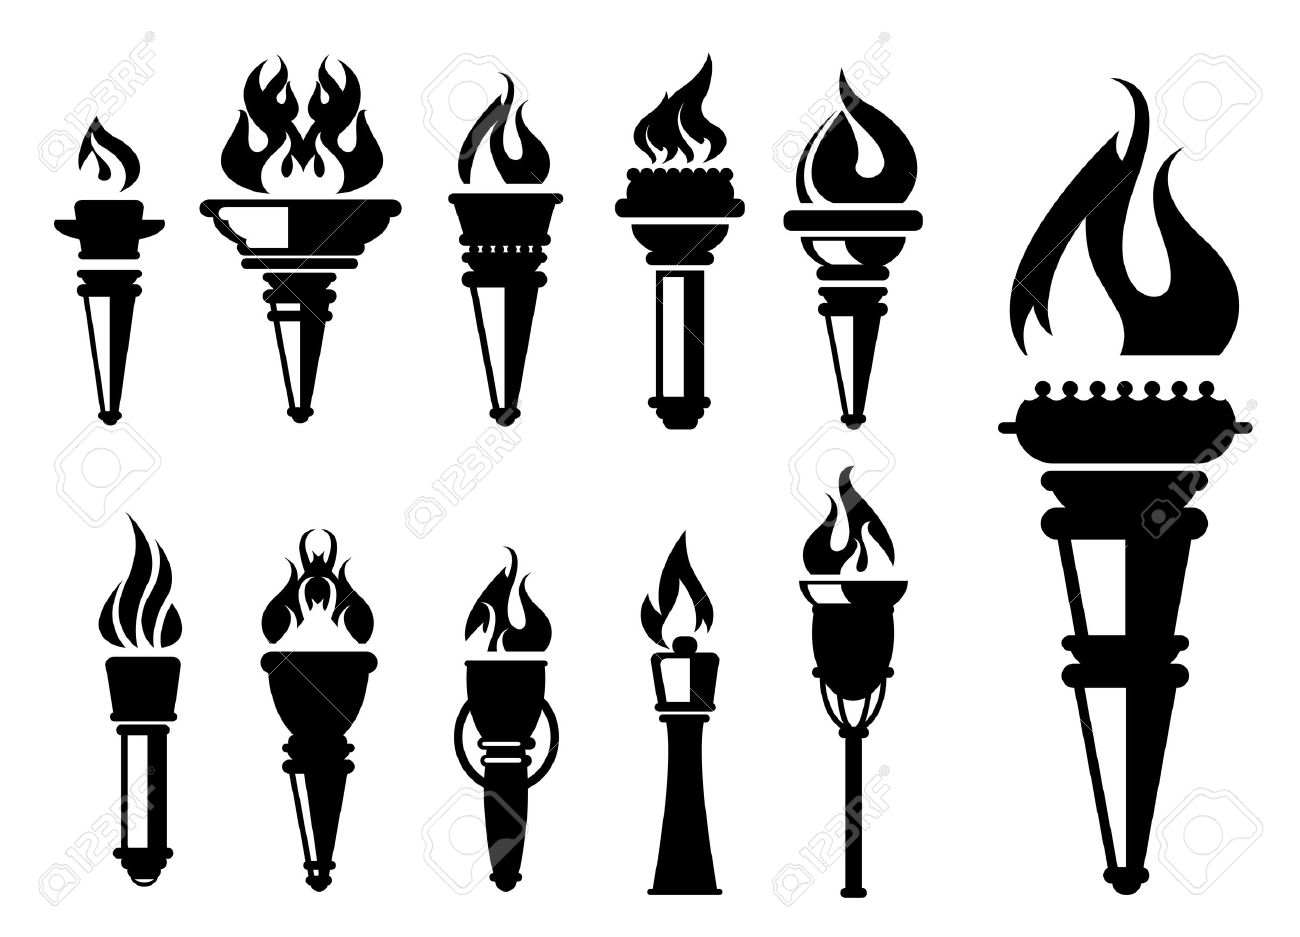 10,379 Torch Stock Vector Illustration And Royalty Free Torch Clipart.